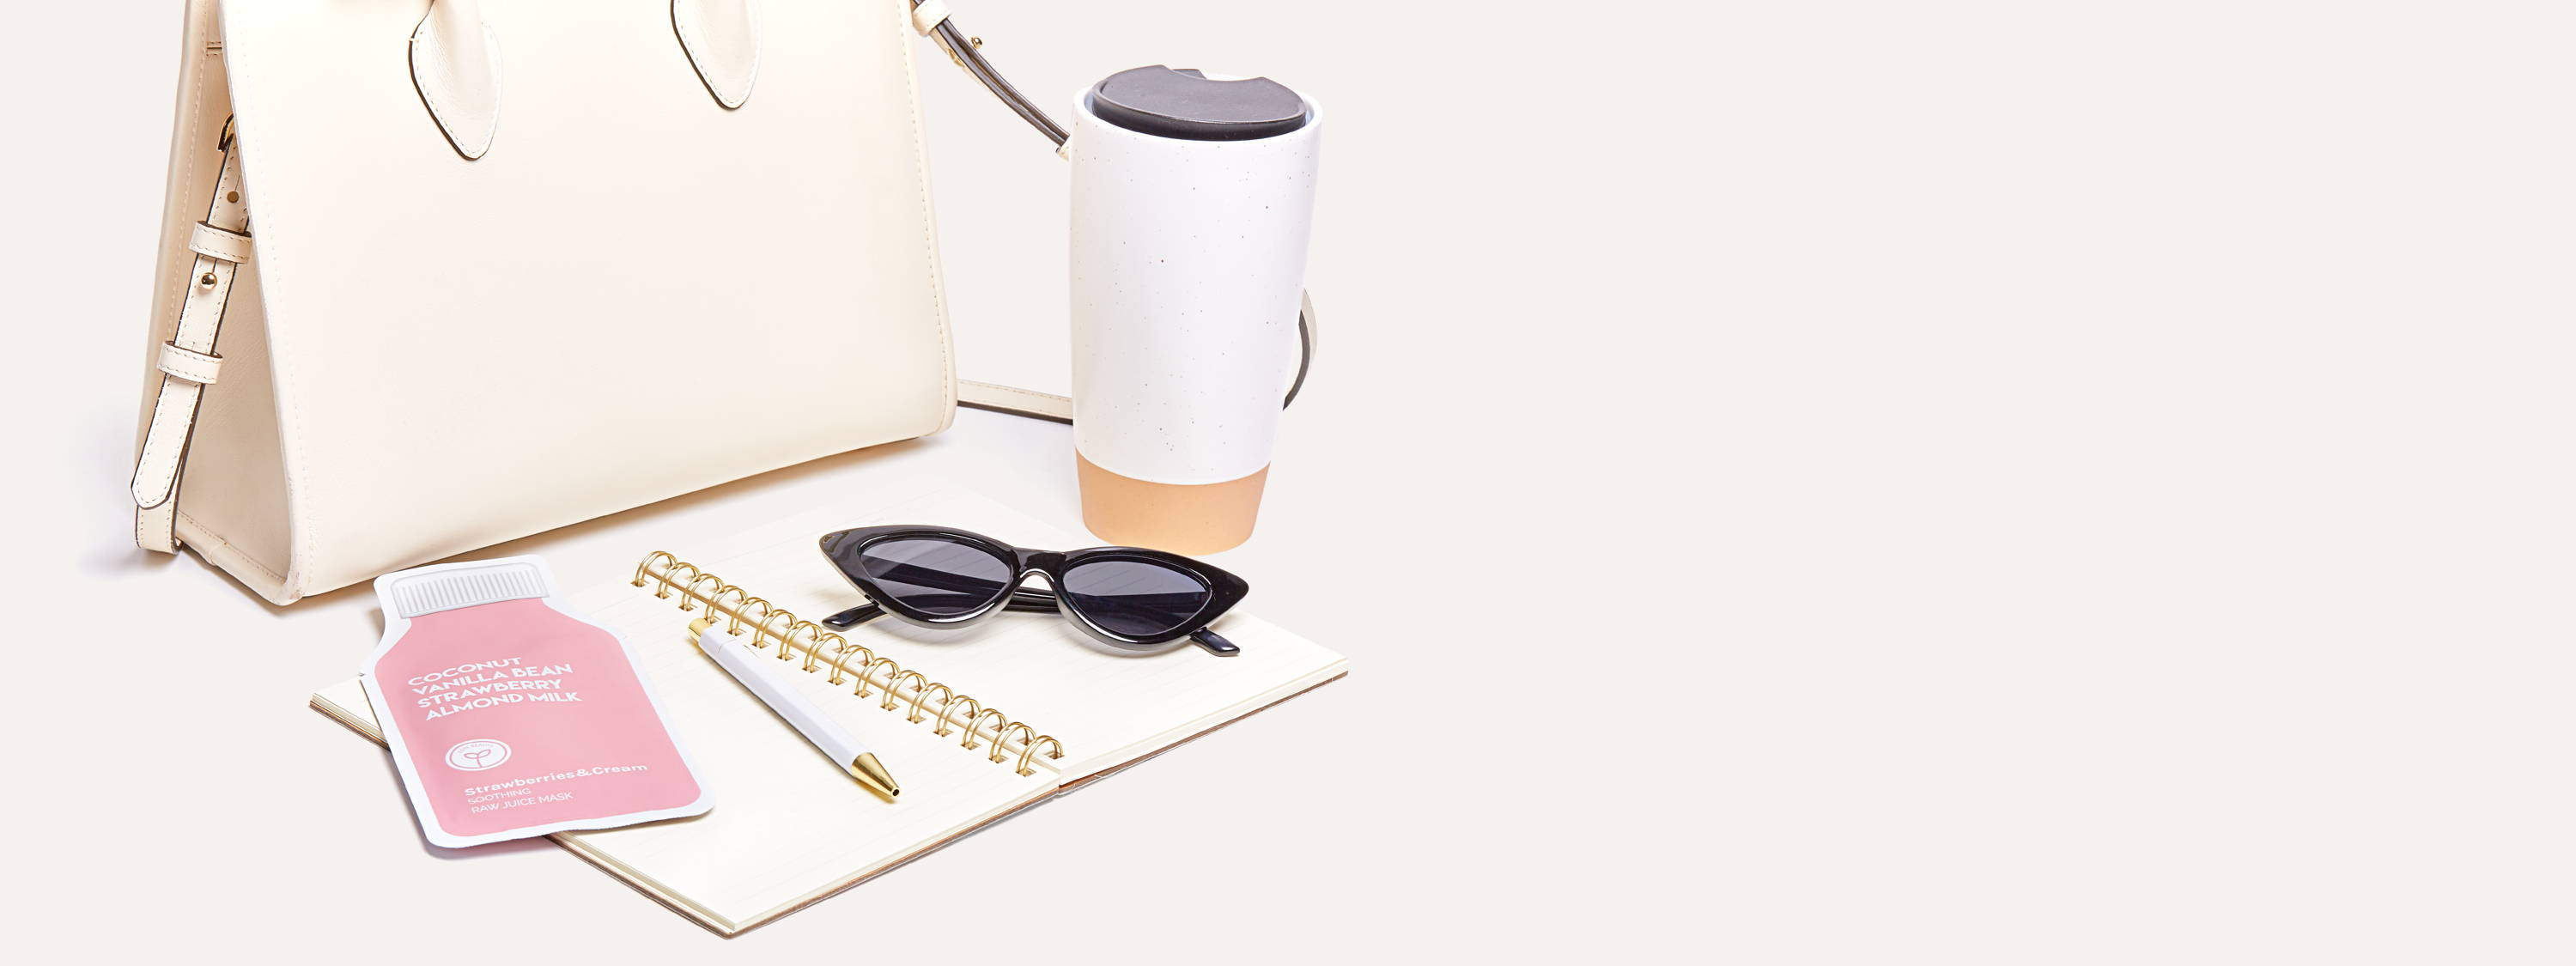 """Cream colored purse,  opened spiral notebook, gold and white pen, black sunglasses, a reusable togo coffee cup, and light pink skincare sheet mask pouch, juice bottle shape with text Coconut, Vanilla Bean, Strawberry, Almond Milk, company logo graphic of sprout inside a white circle, and text """"Strawberries & Cream"""" on a white background."""